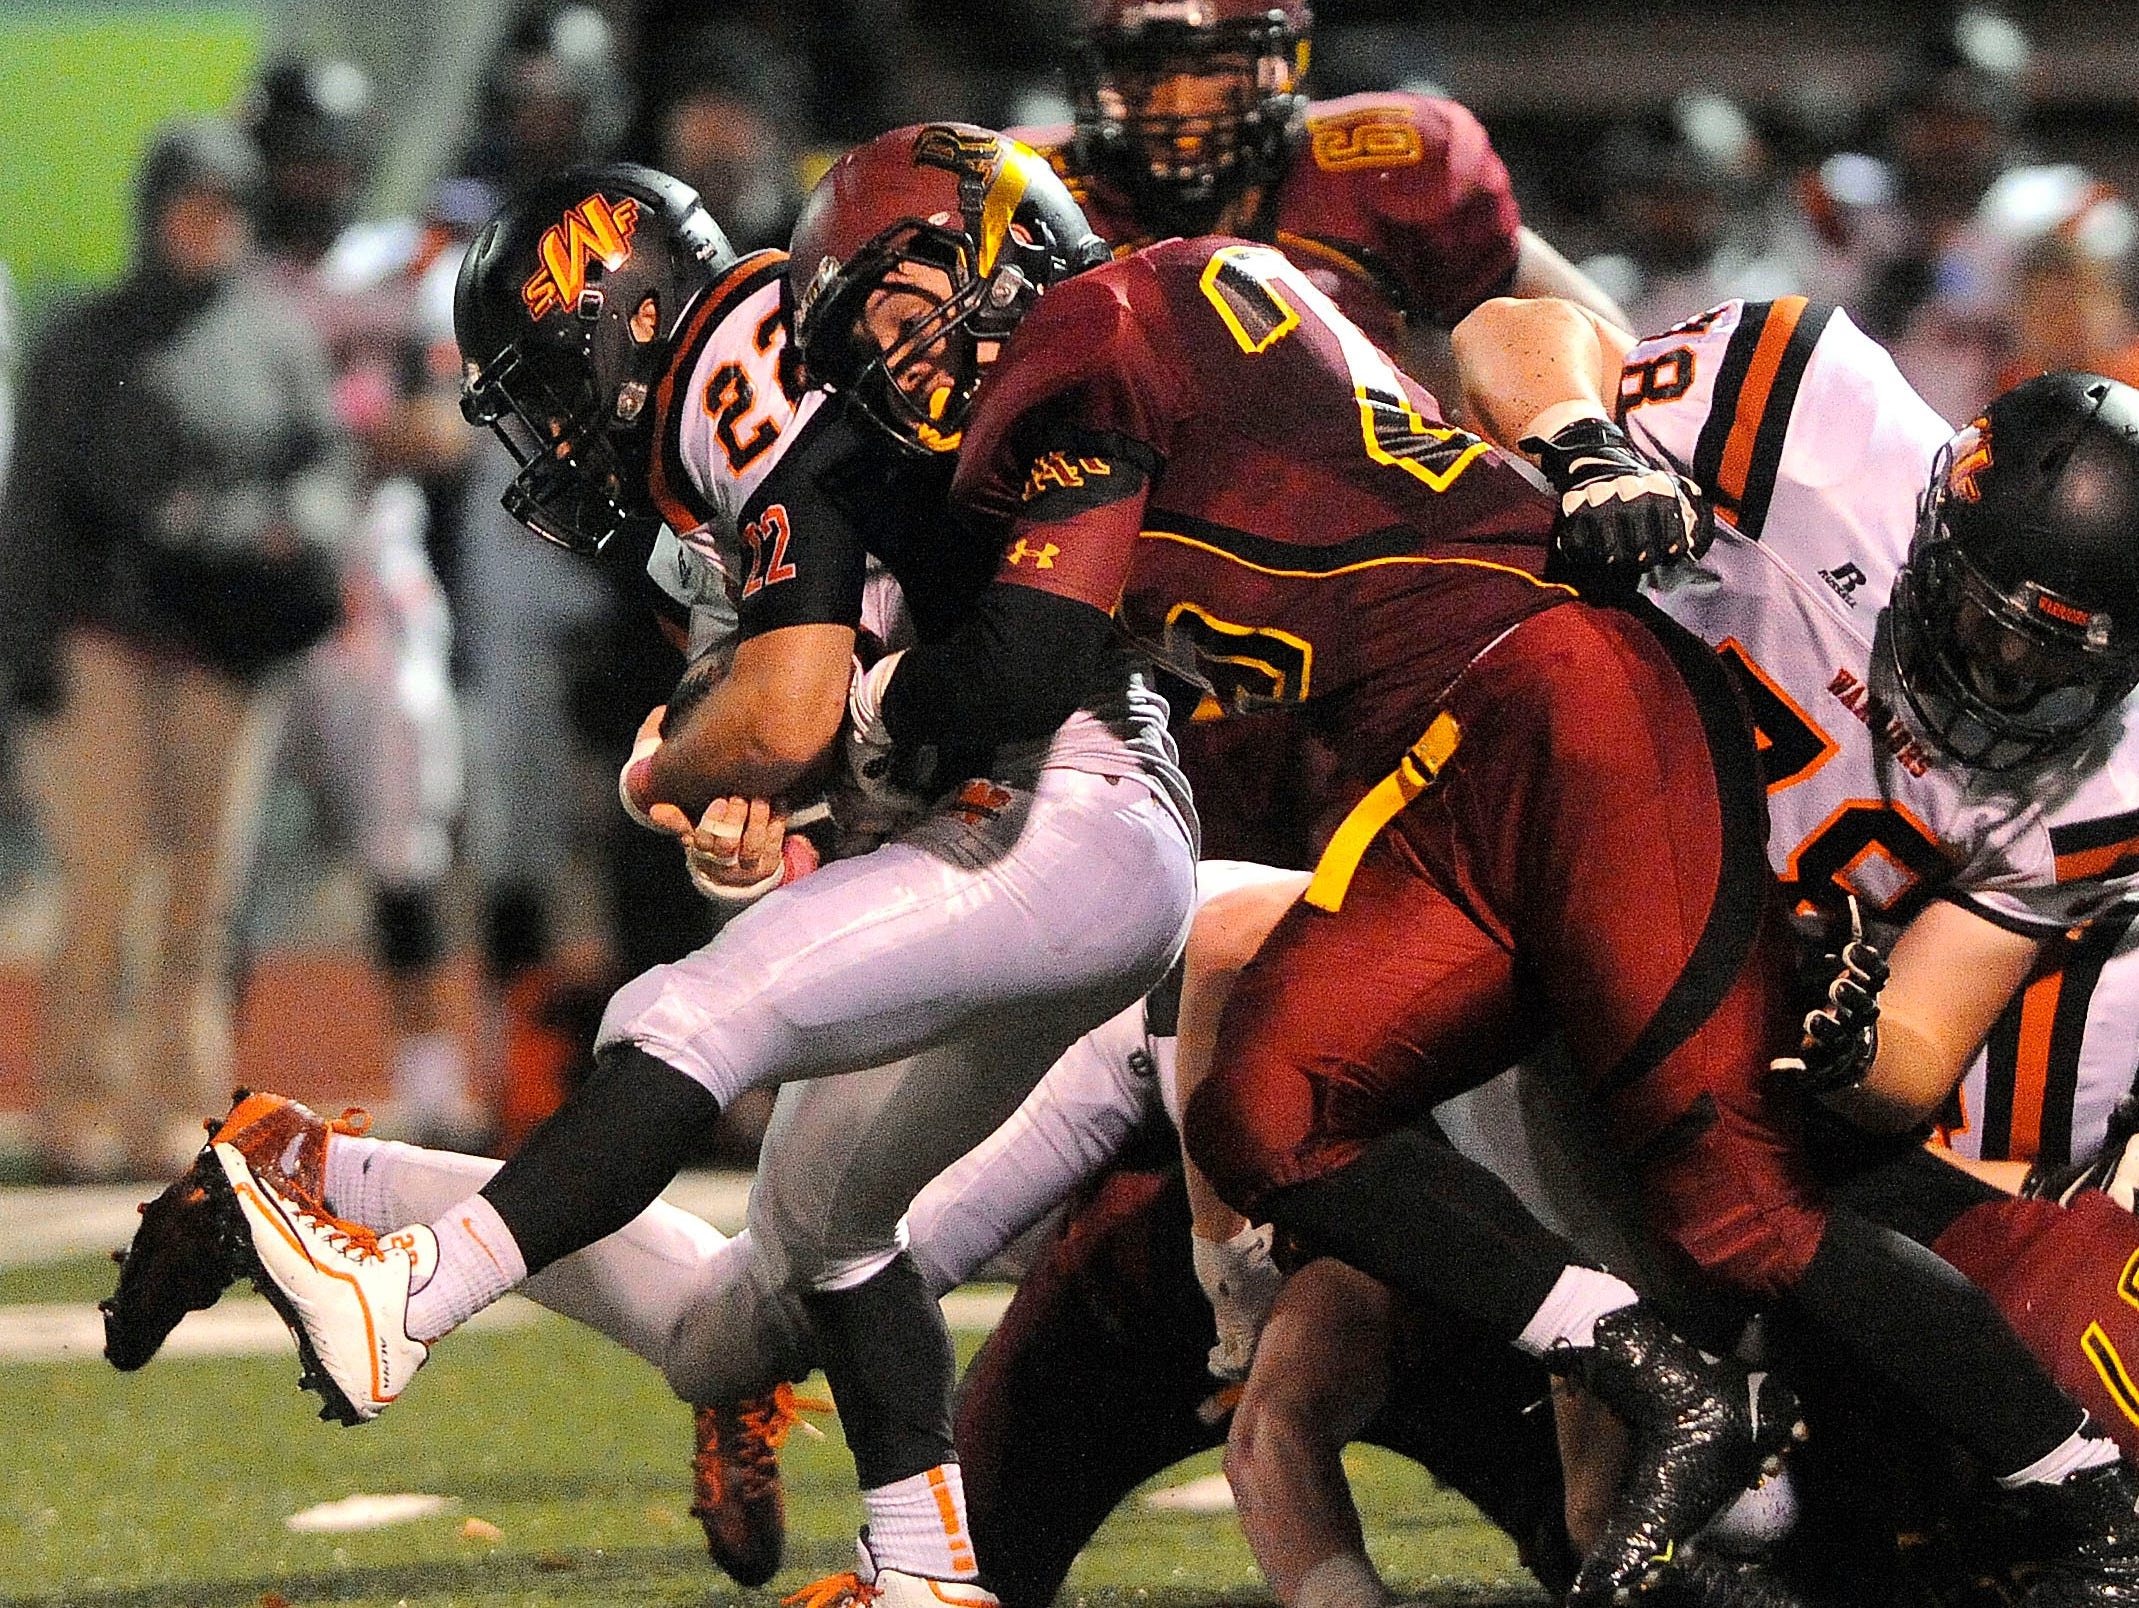 Washington's #22 Chayden Fitzsimmons is tackled by Roosevelt's #25 Tanner Machacek during football action at Howard Wood Field in Sioux Falls, S.D., Thursday, Oct. 22, 2015.